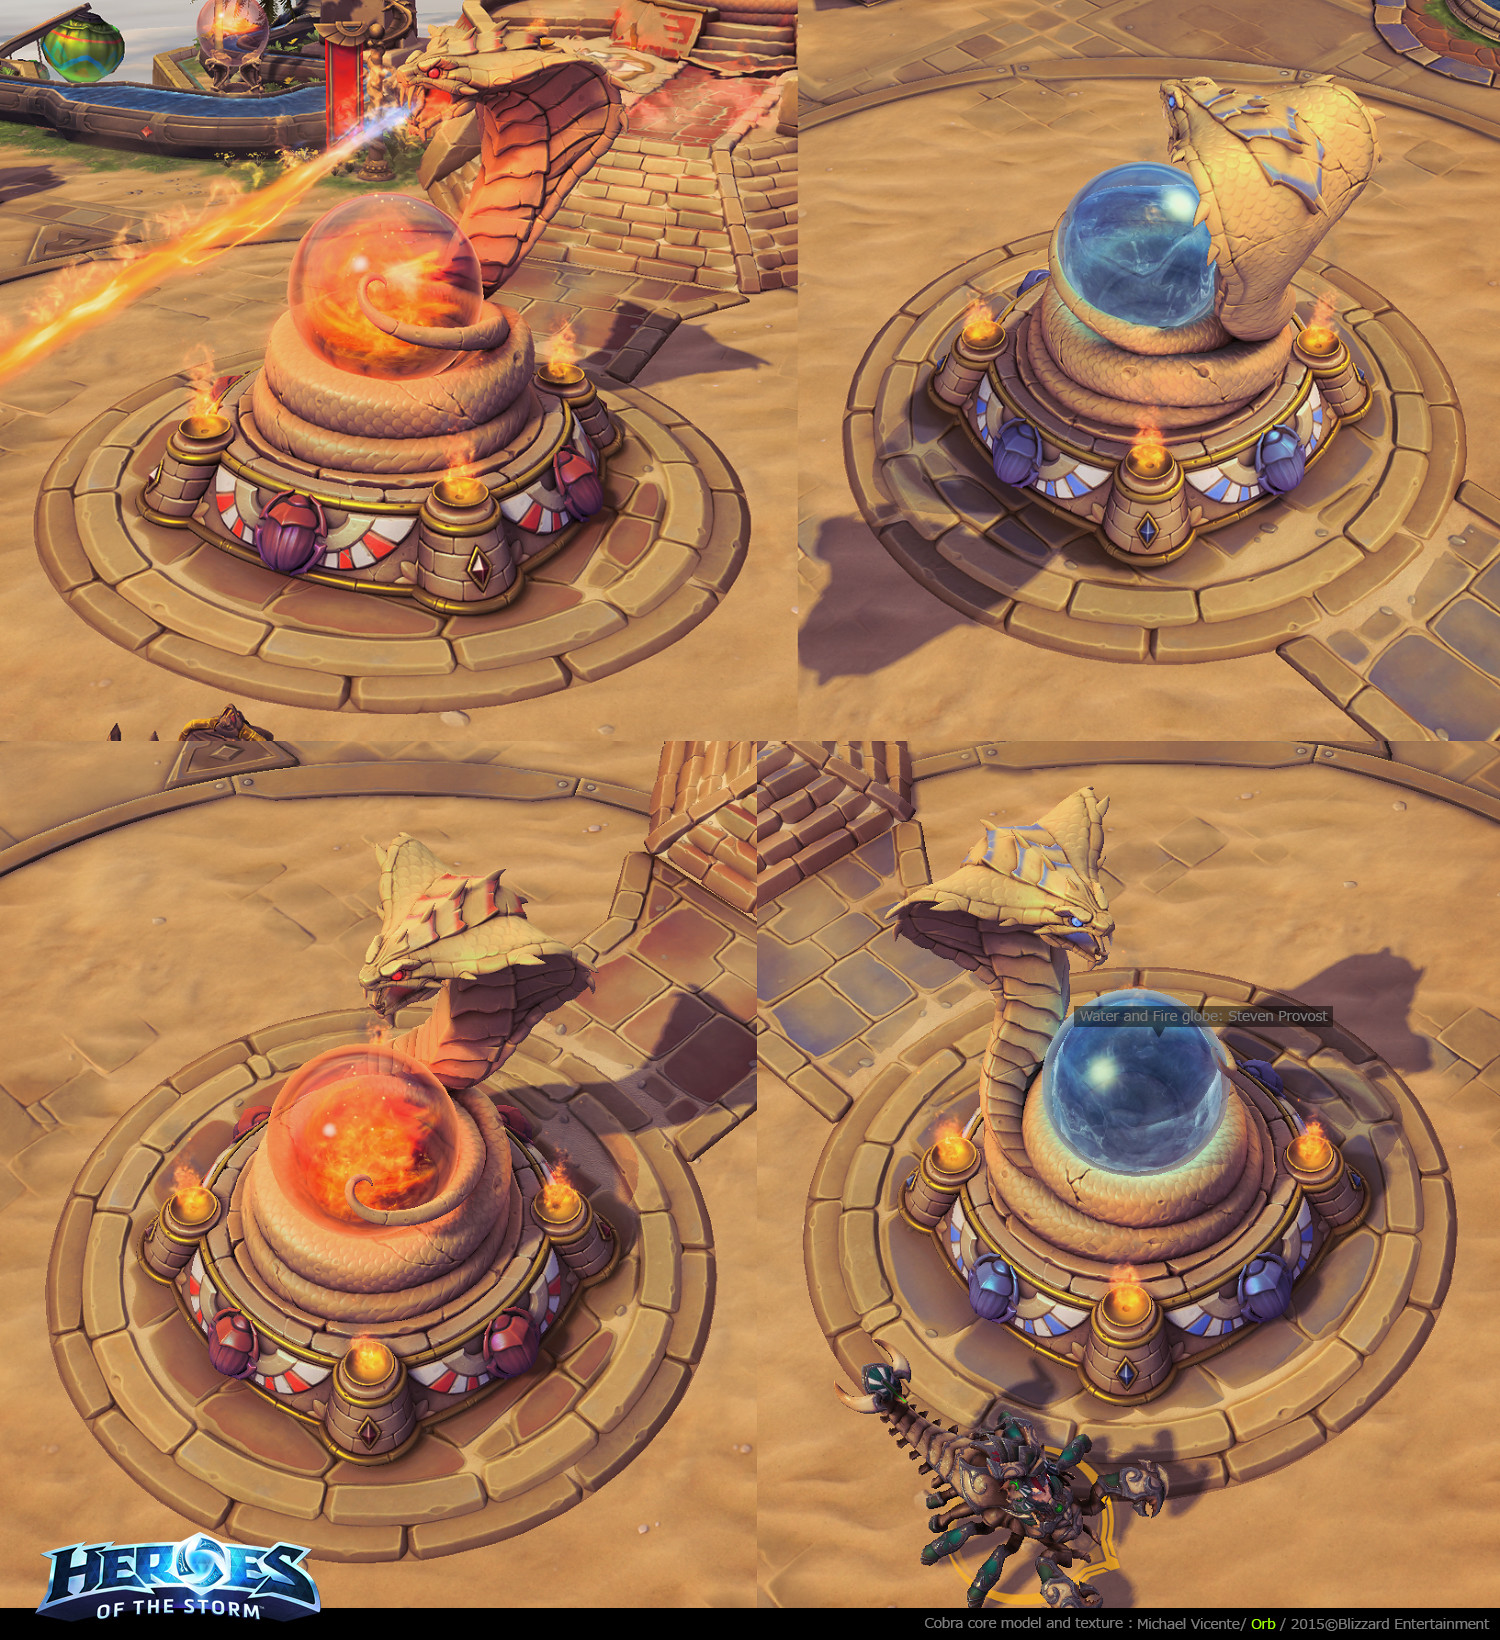 michael orb vicente heroes of the storm